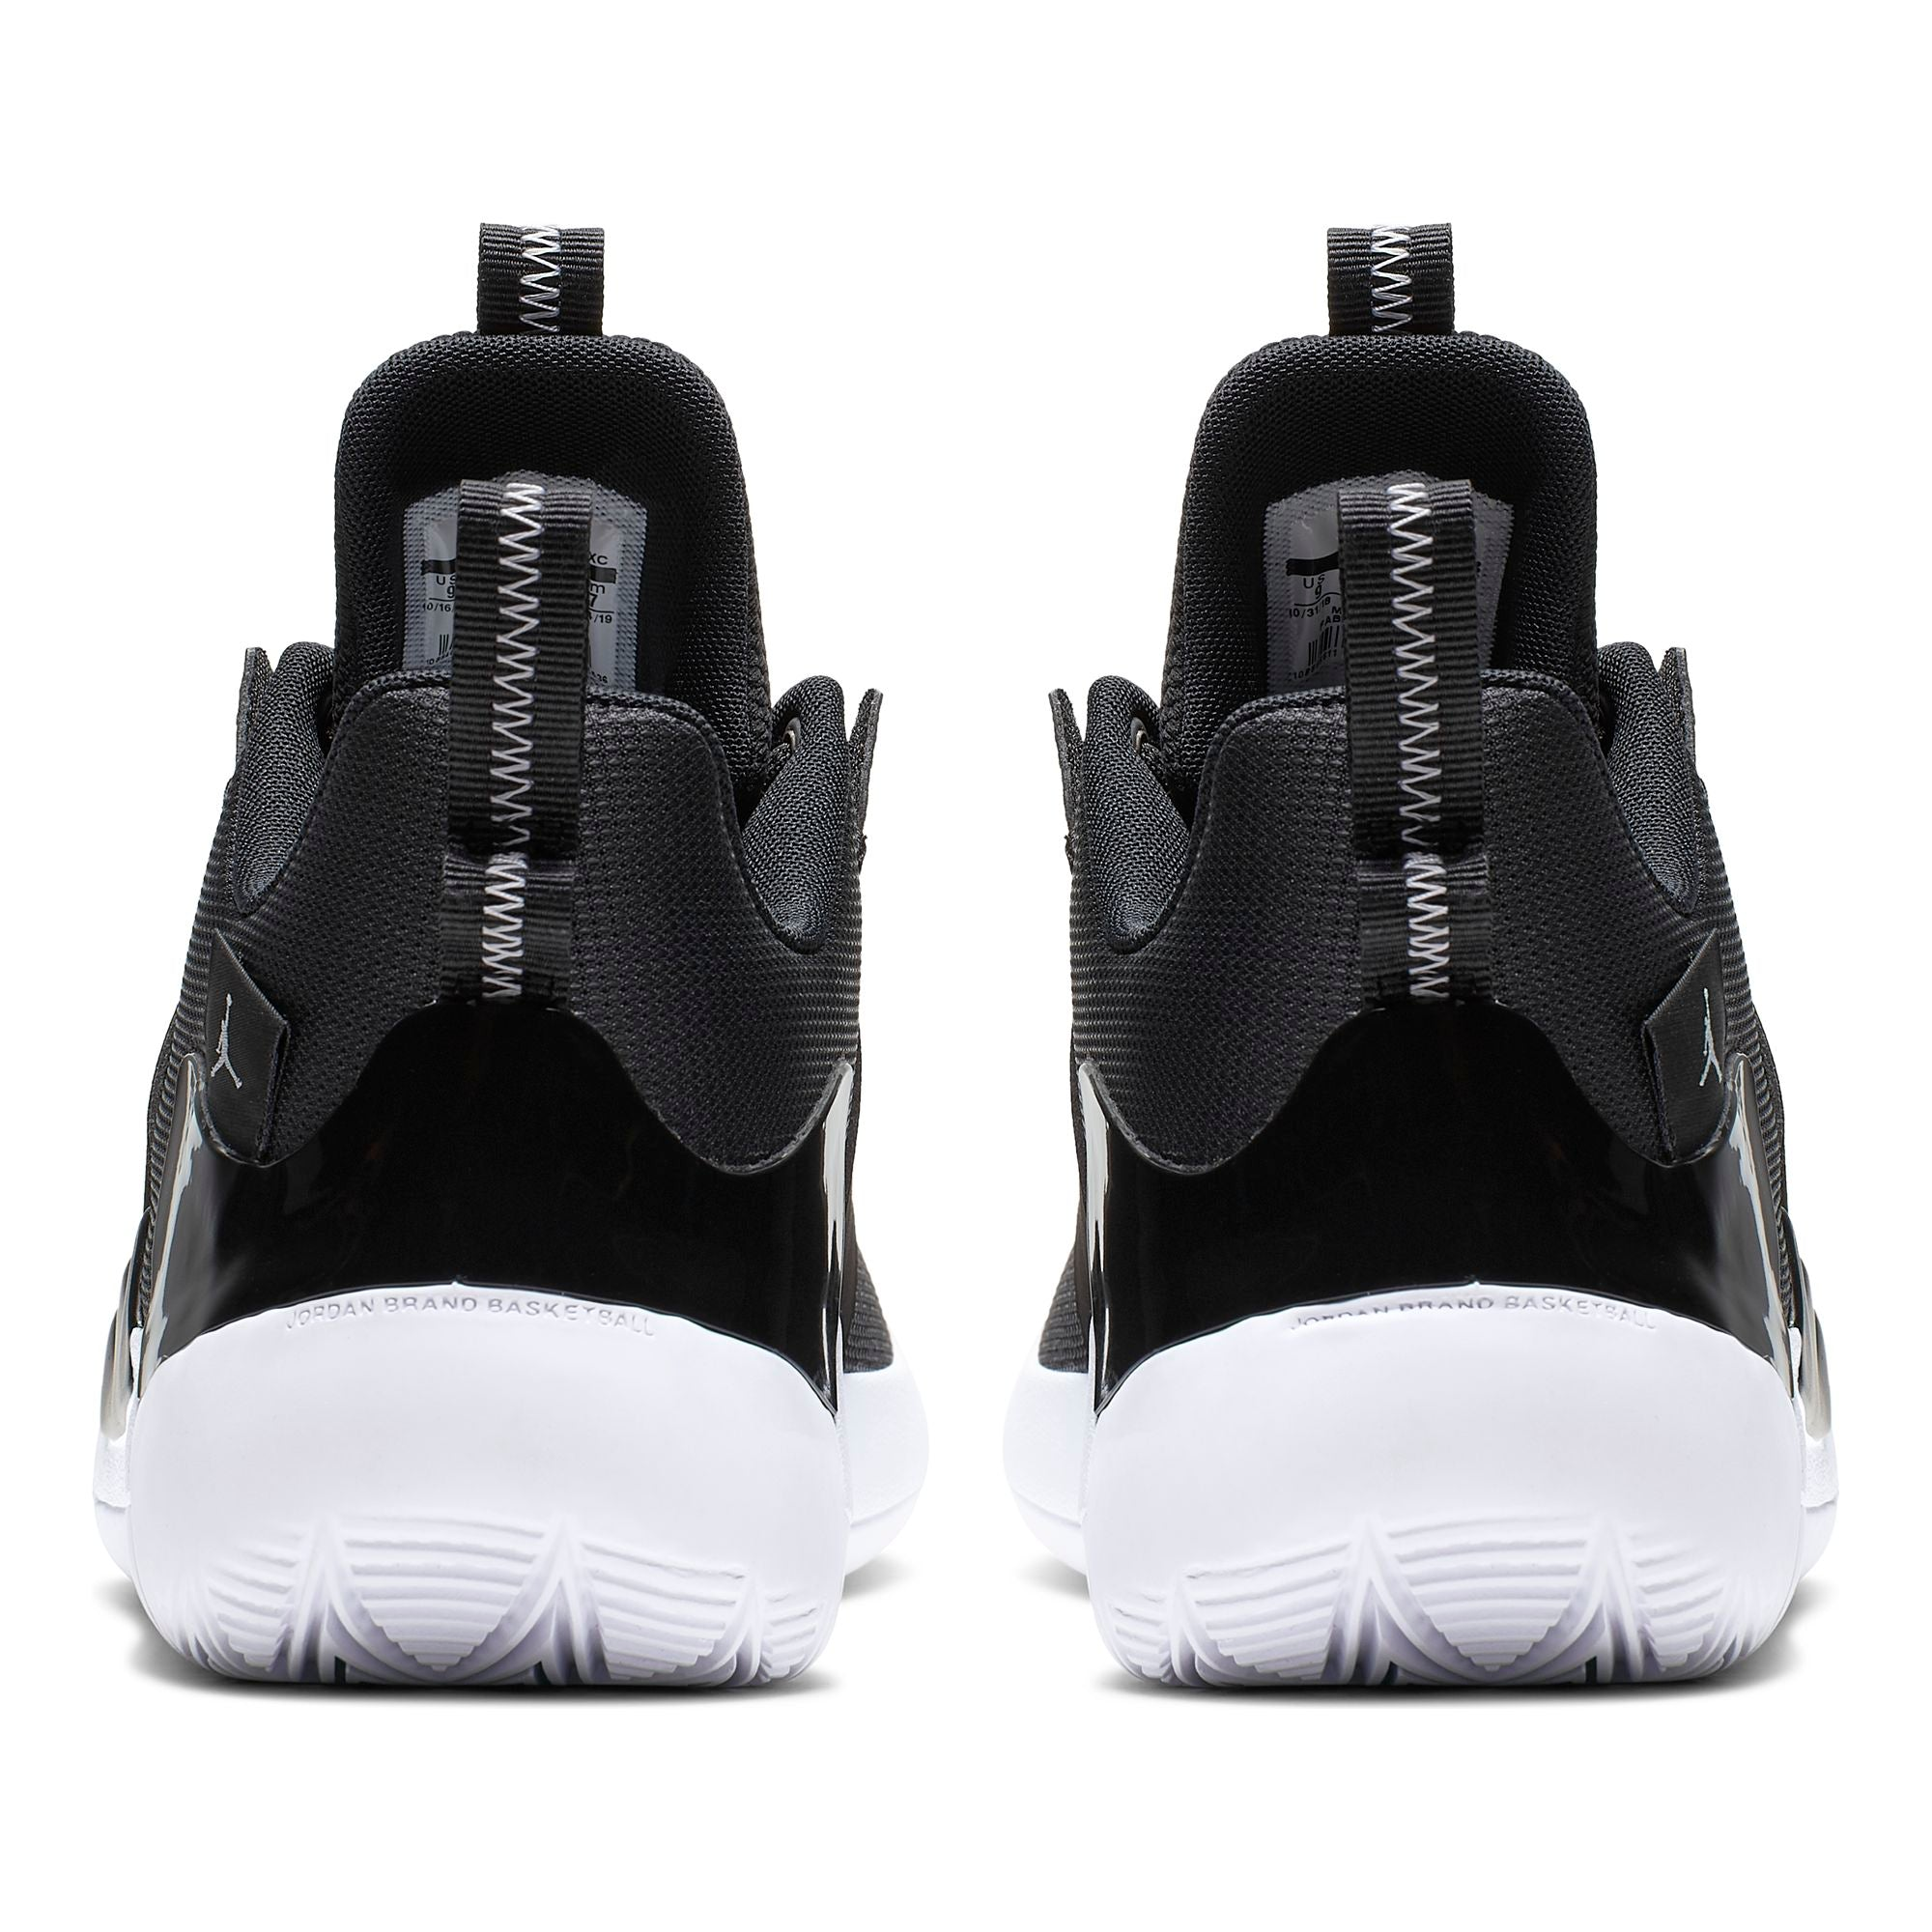 Nike Jordan Zoom Zero Gravity Basketball Boot/Shoe - Black/White